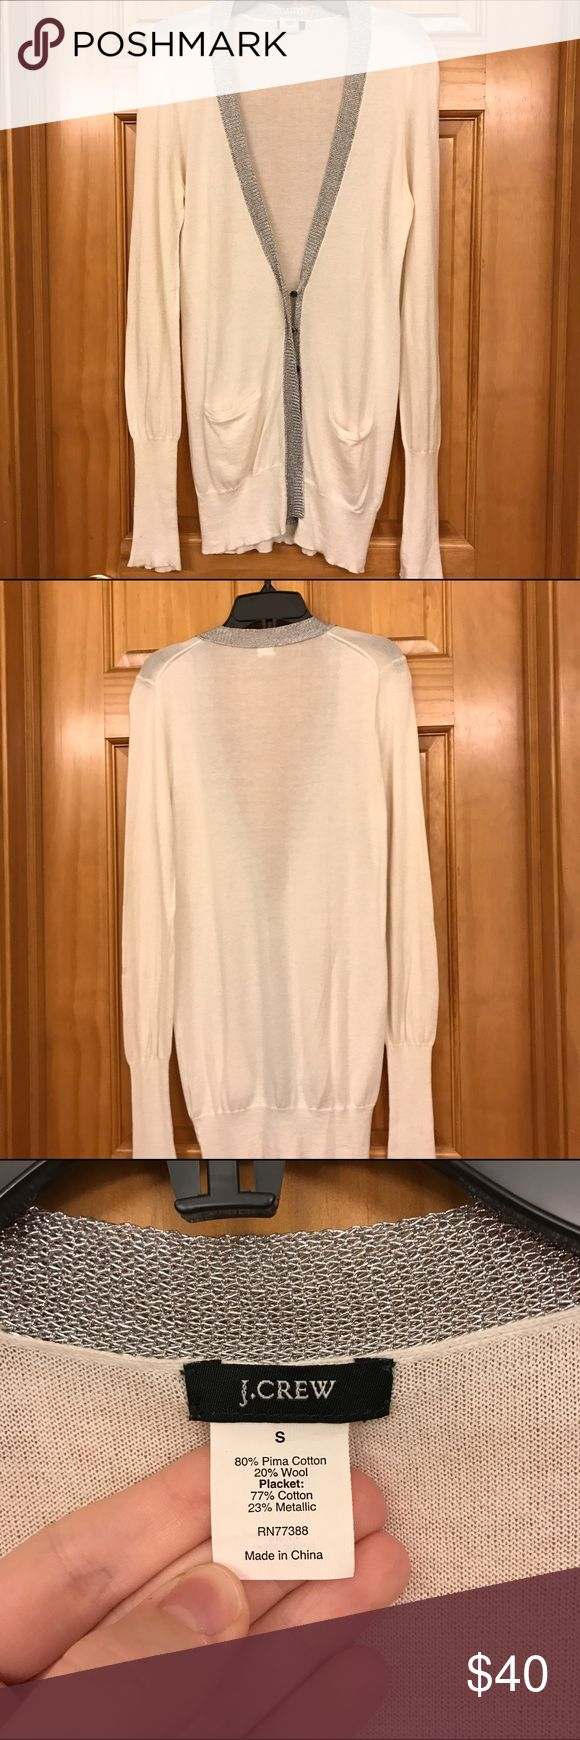 J. Crew Cream & Silver Cardigan Beautiful cream cardigan with metallic silver trim. Excellent condition- no pilling, missing buttons, etc. J. Crew Sweaters Cardigans